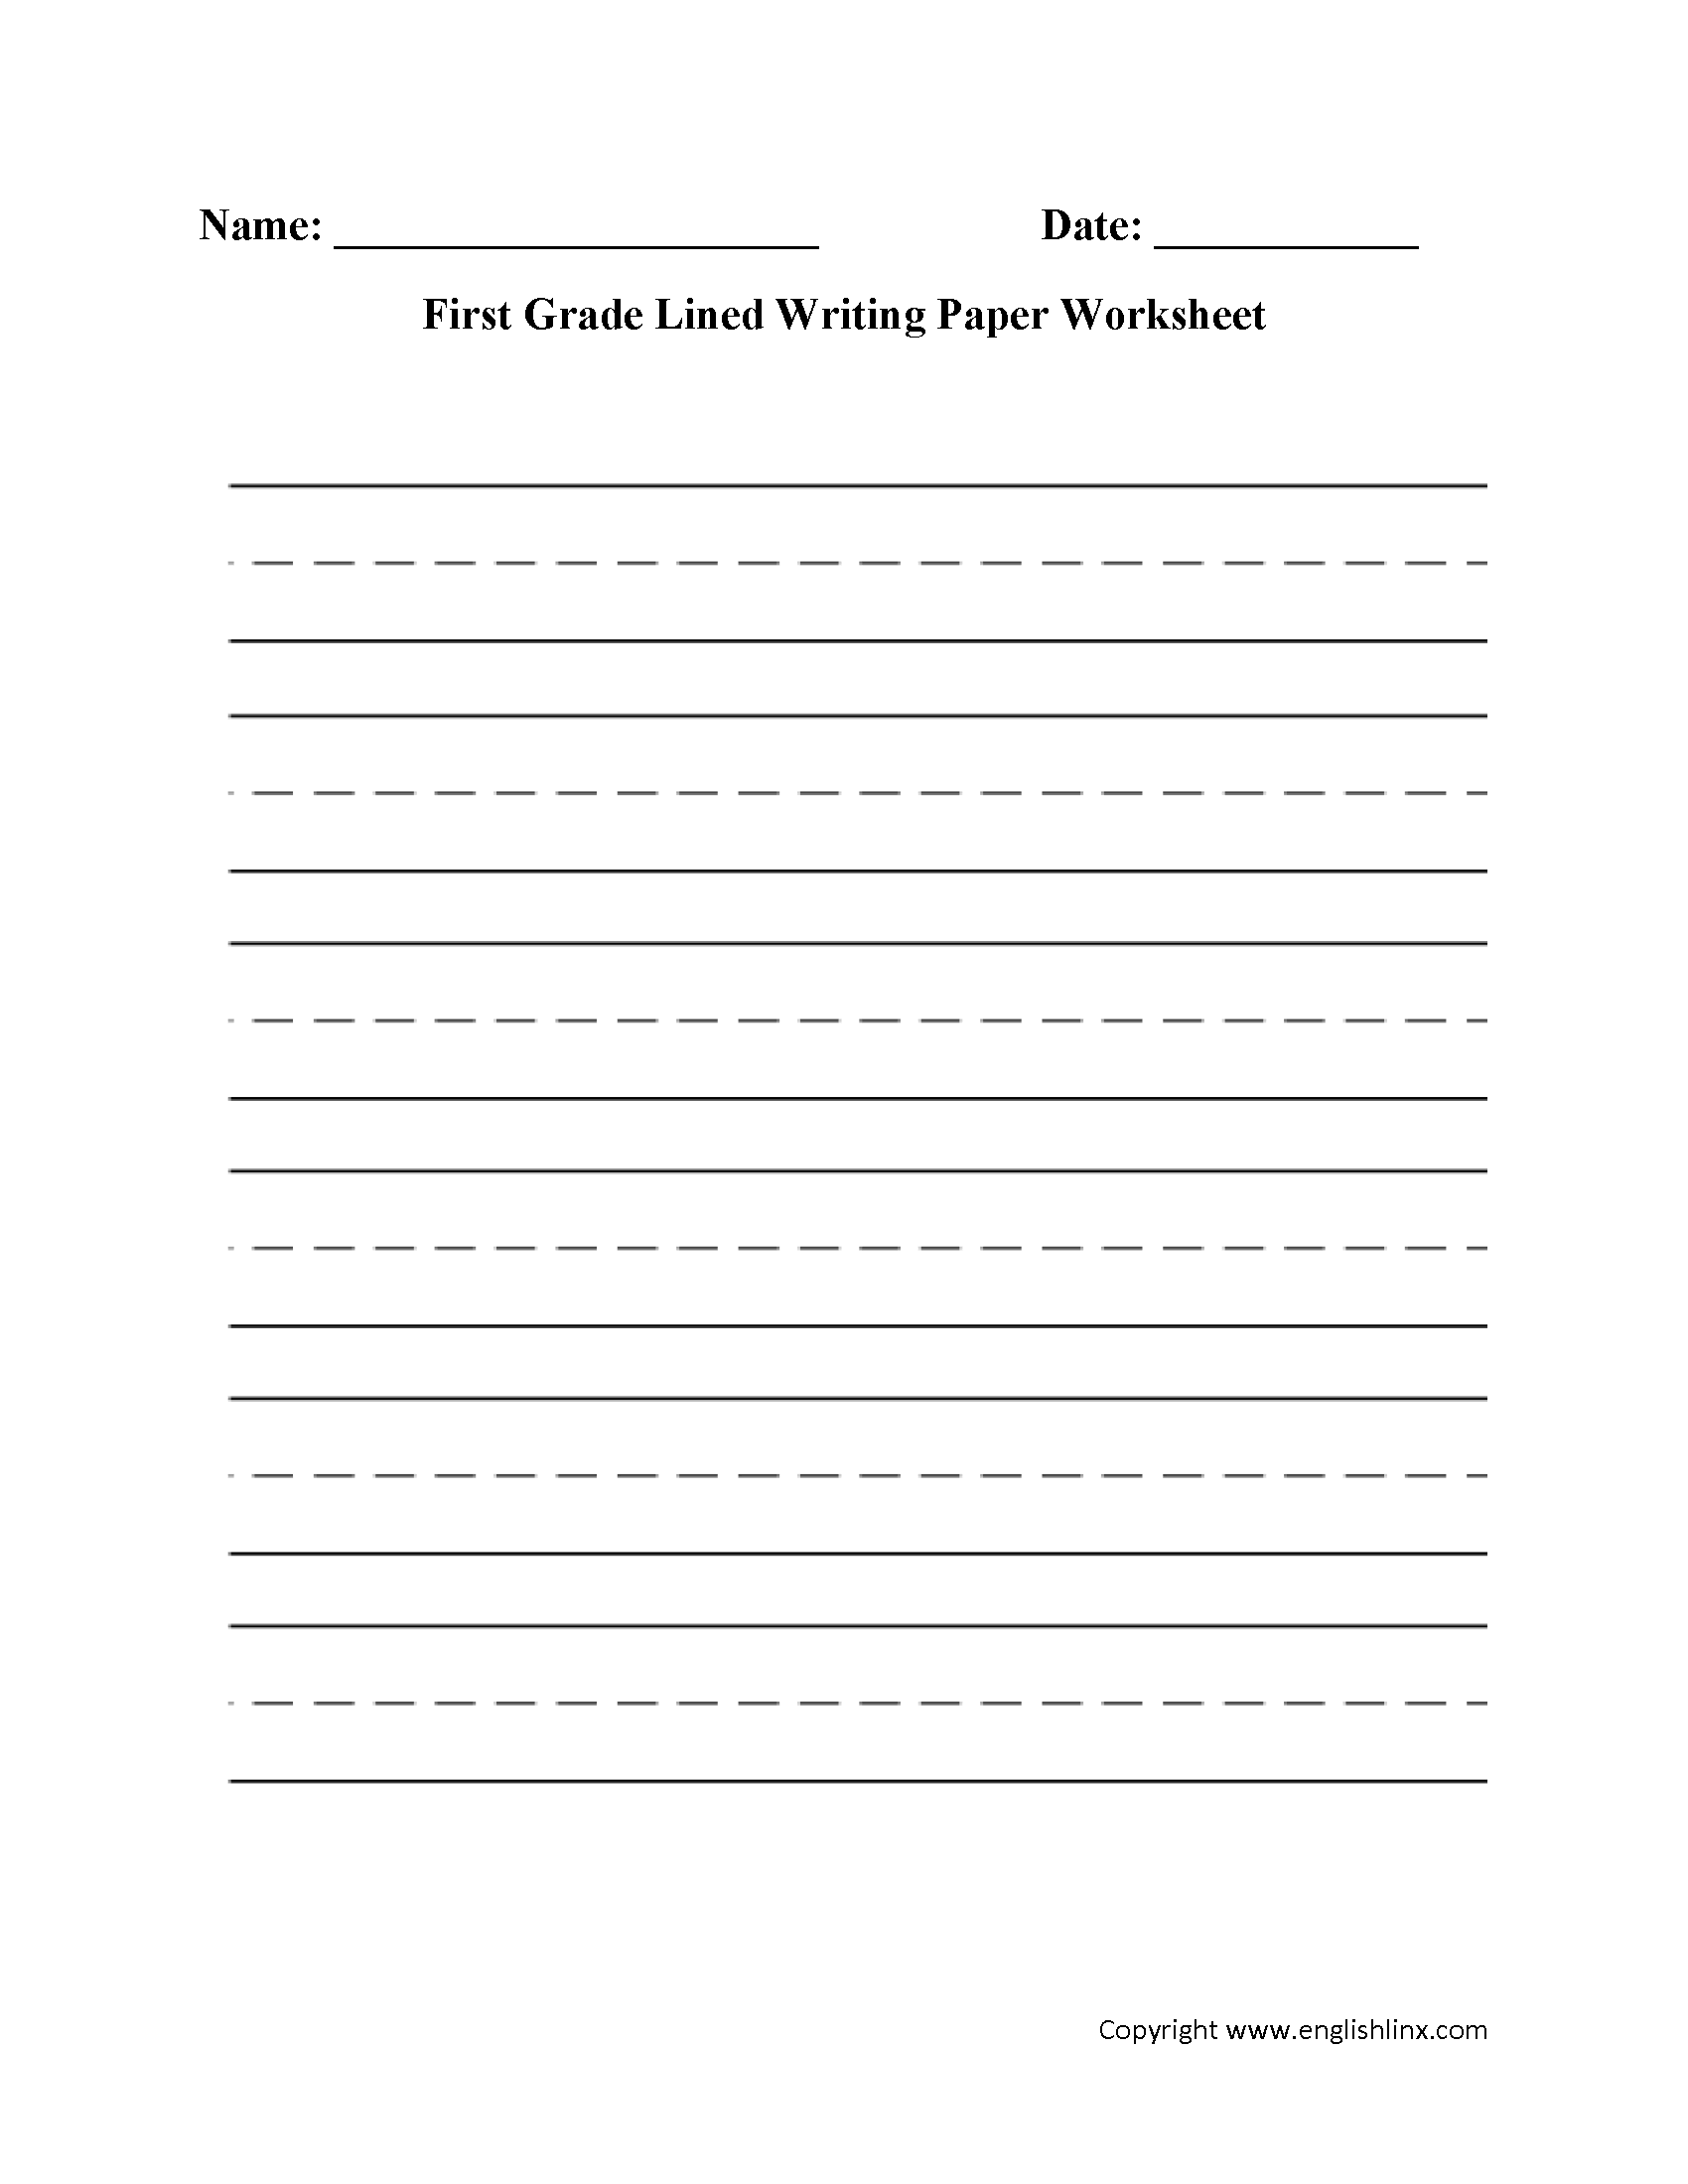 Writing Worksheets Lined Writing Paper Worksheets - Best Writing Worksheets  Lined Writing Pap…   Writing lines [ 2200 x 1700 Pixel ]